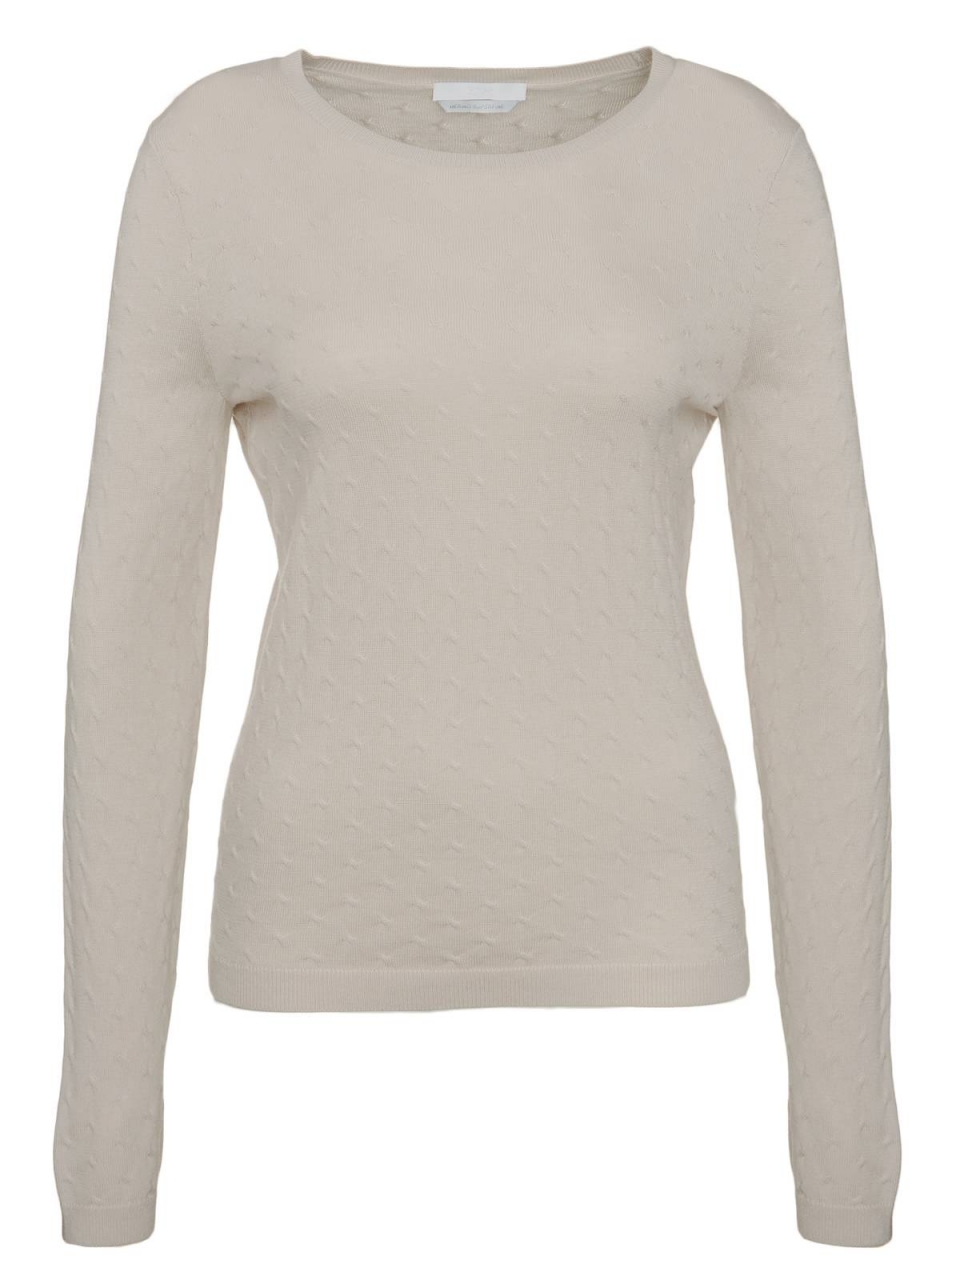 BOSS Pullover Faunia mit Zopfstrick-Muster